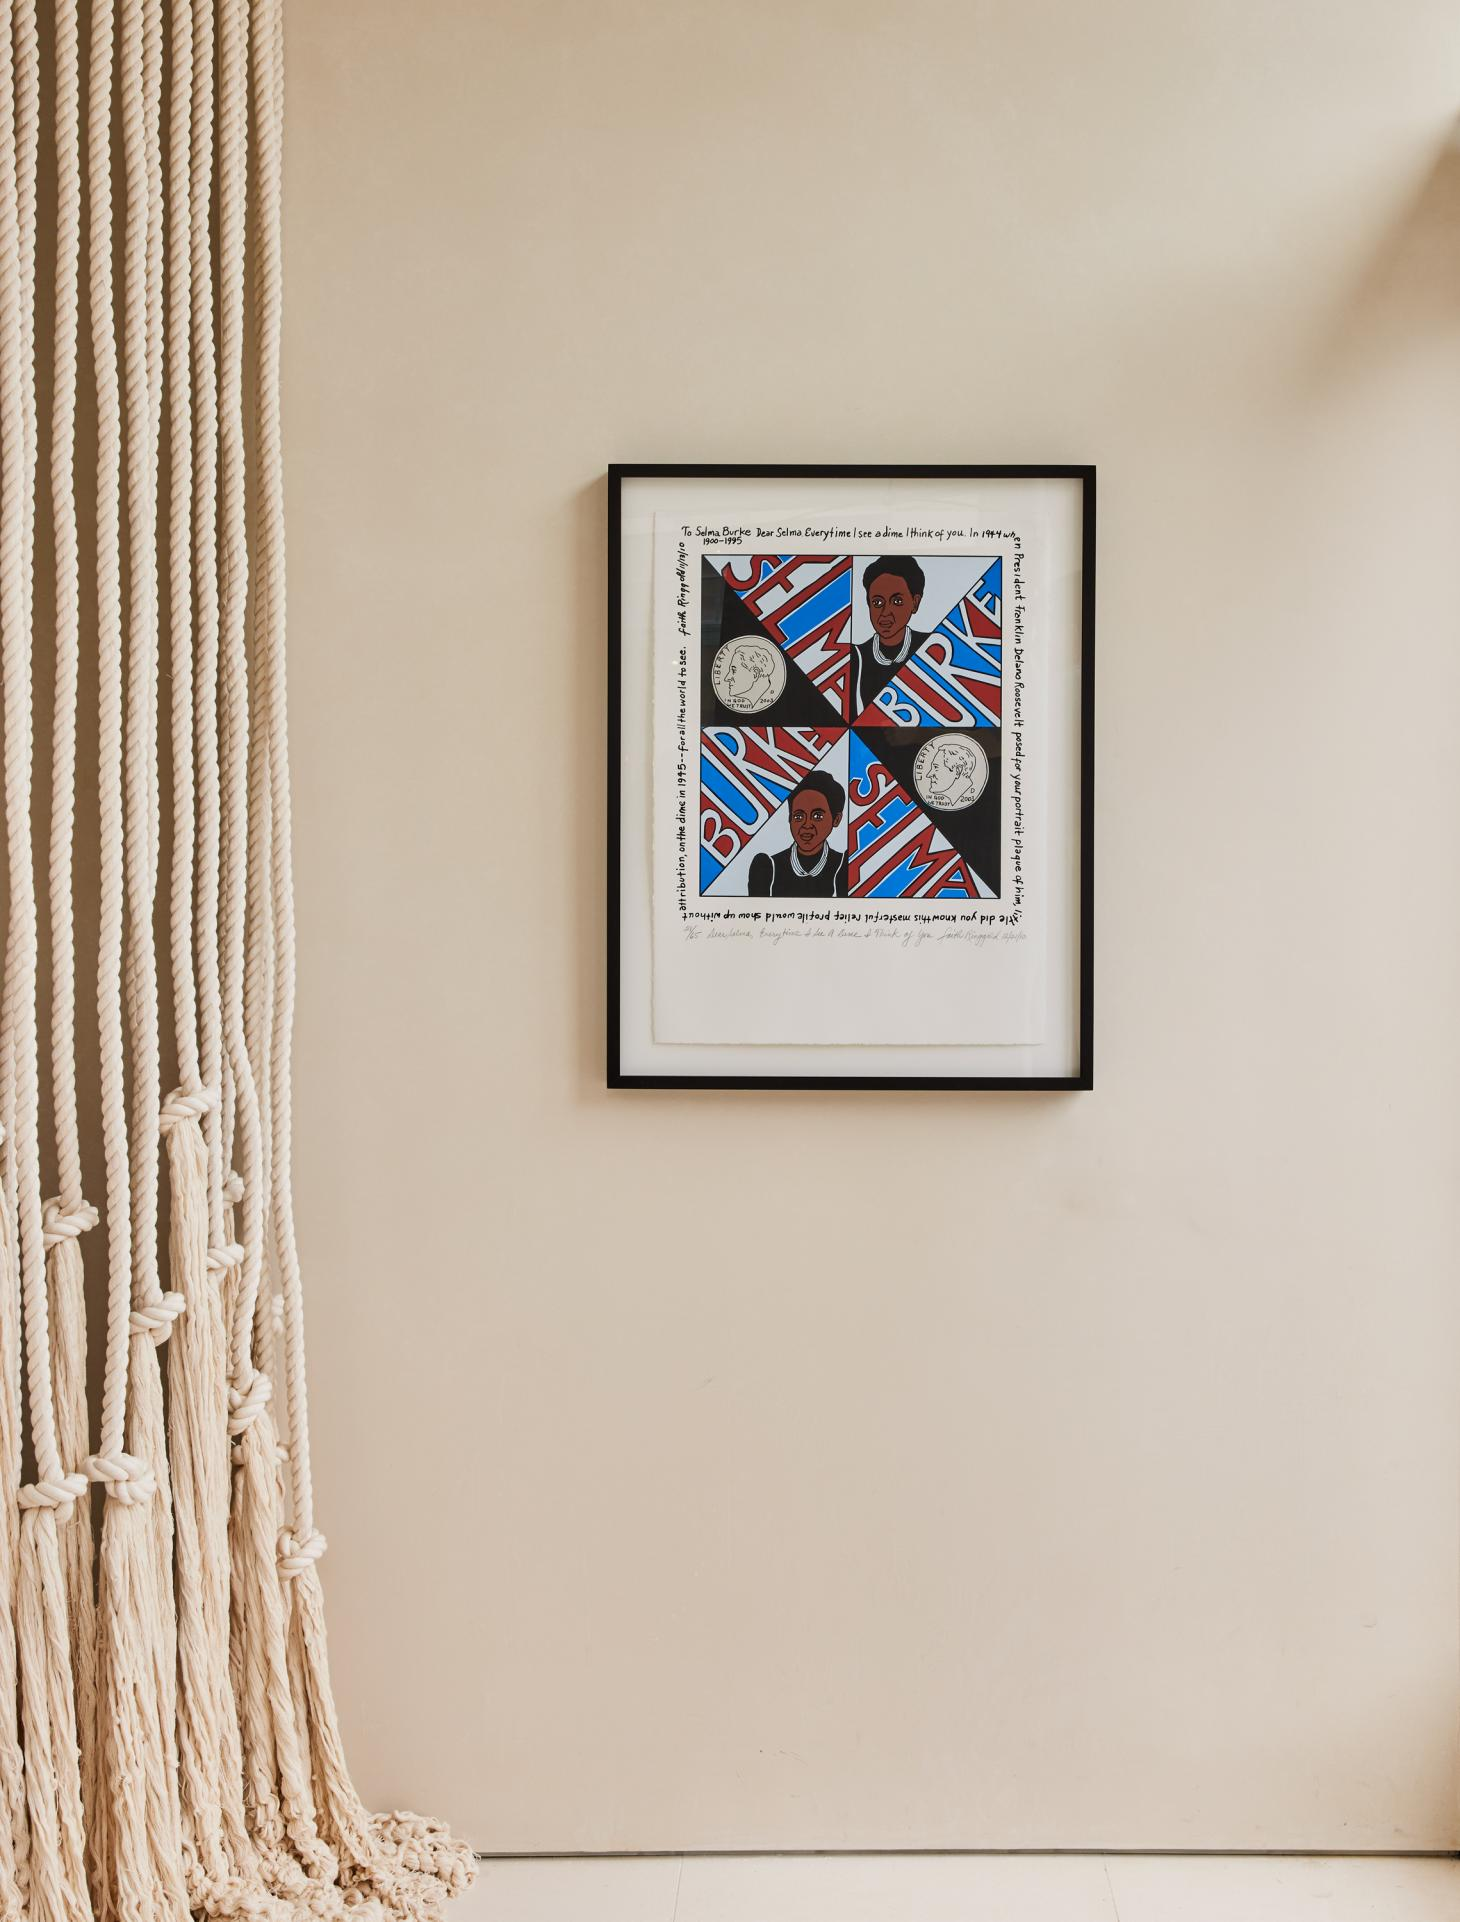 Artwork by Faith Ringgold titled 'Dear Selma, Every Time I See A Dime, I Think Of You' on the wall